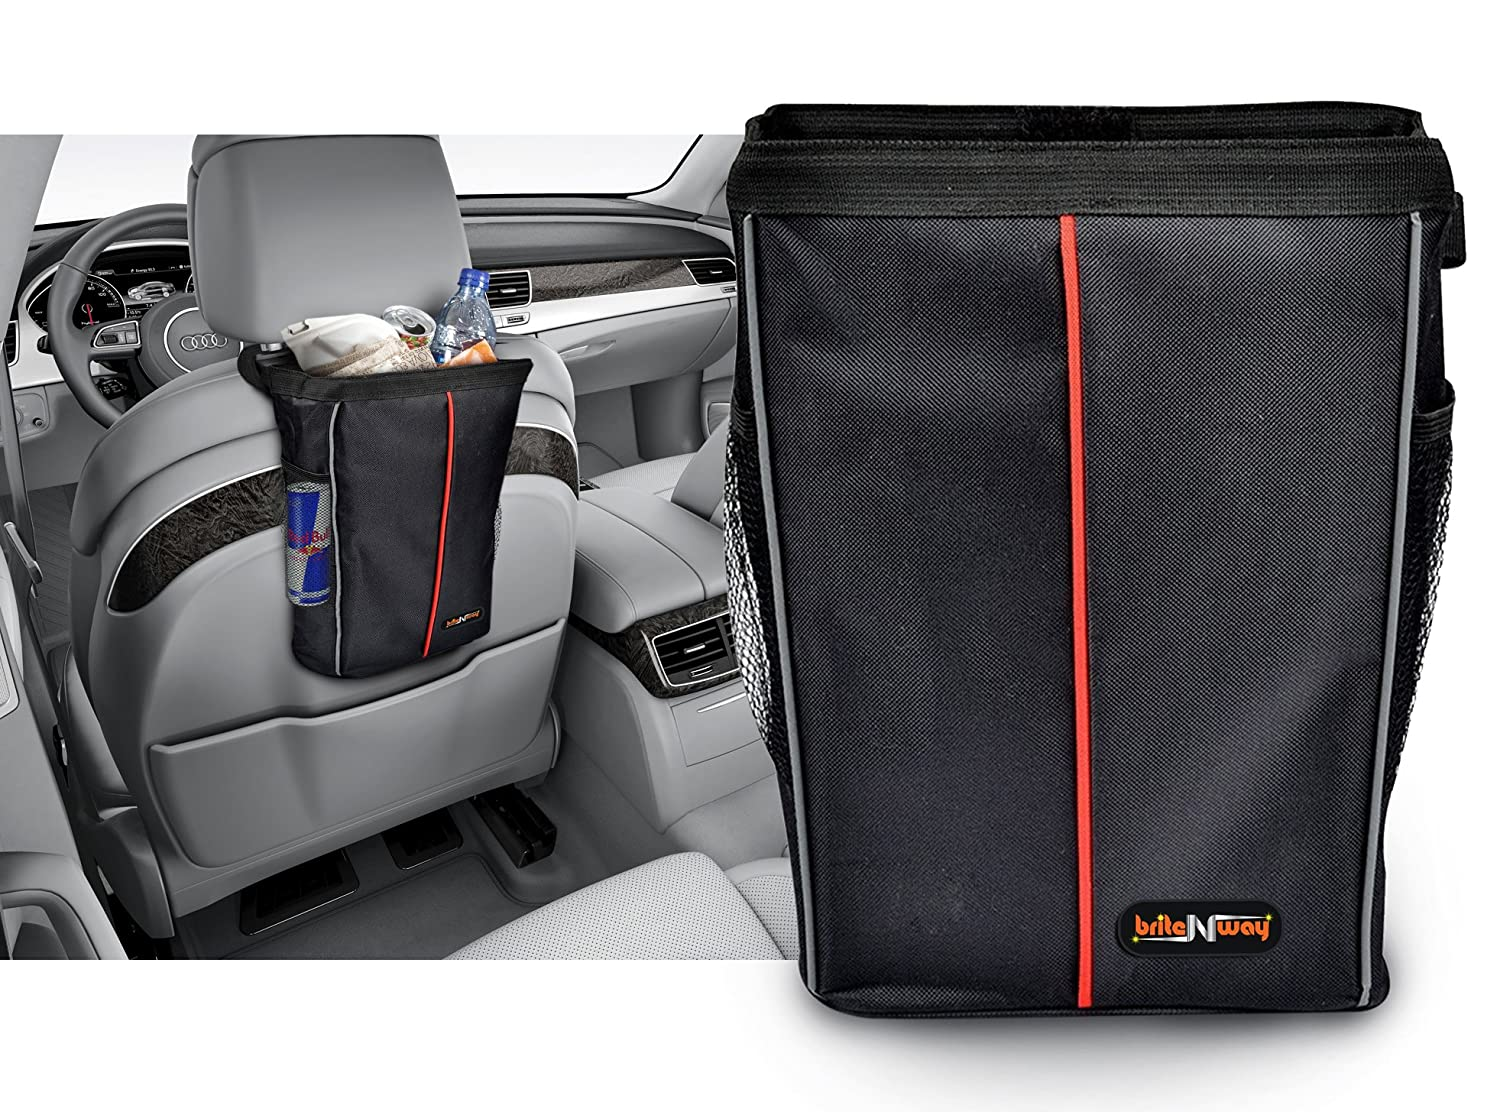 Car Garbage Bag - Auto Leakproof Litter Bin - Stylish Designed - High Interior Care with Washable Wipe-clean Liner Surface - Perfect To Hold On your Cars Seat Headrest  or Floor -A Must-have Accessory BriteNway BRTN00107